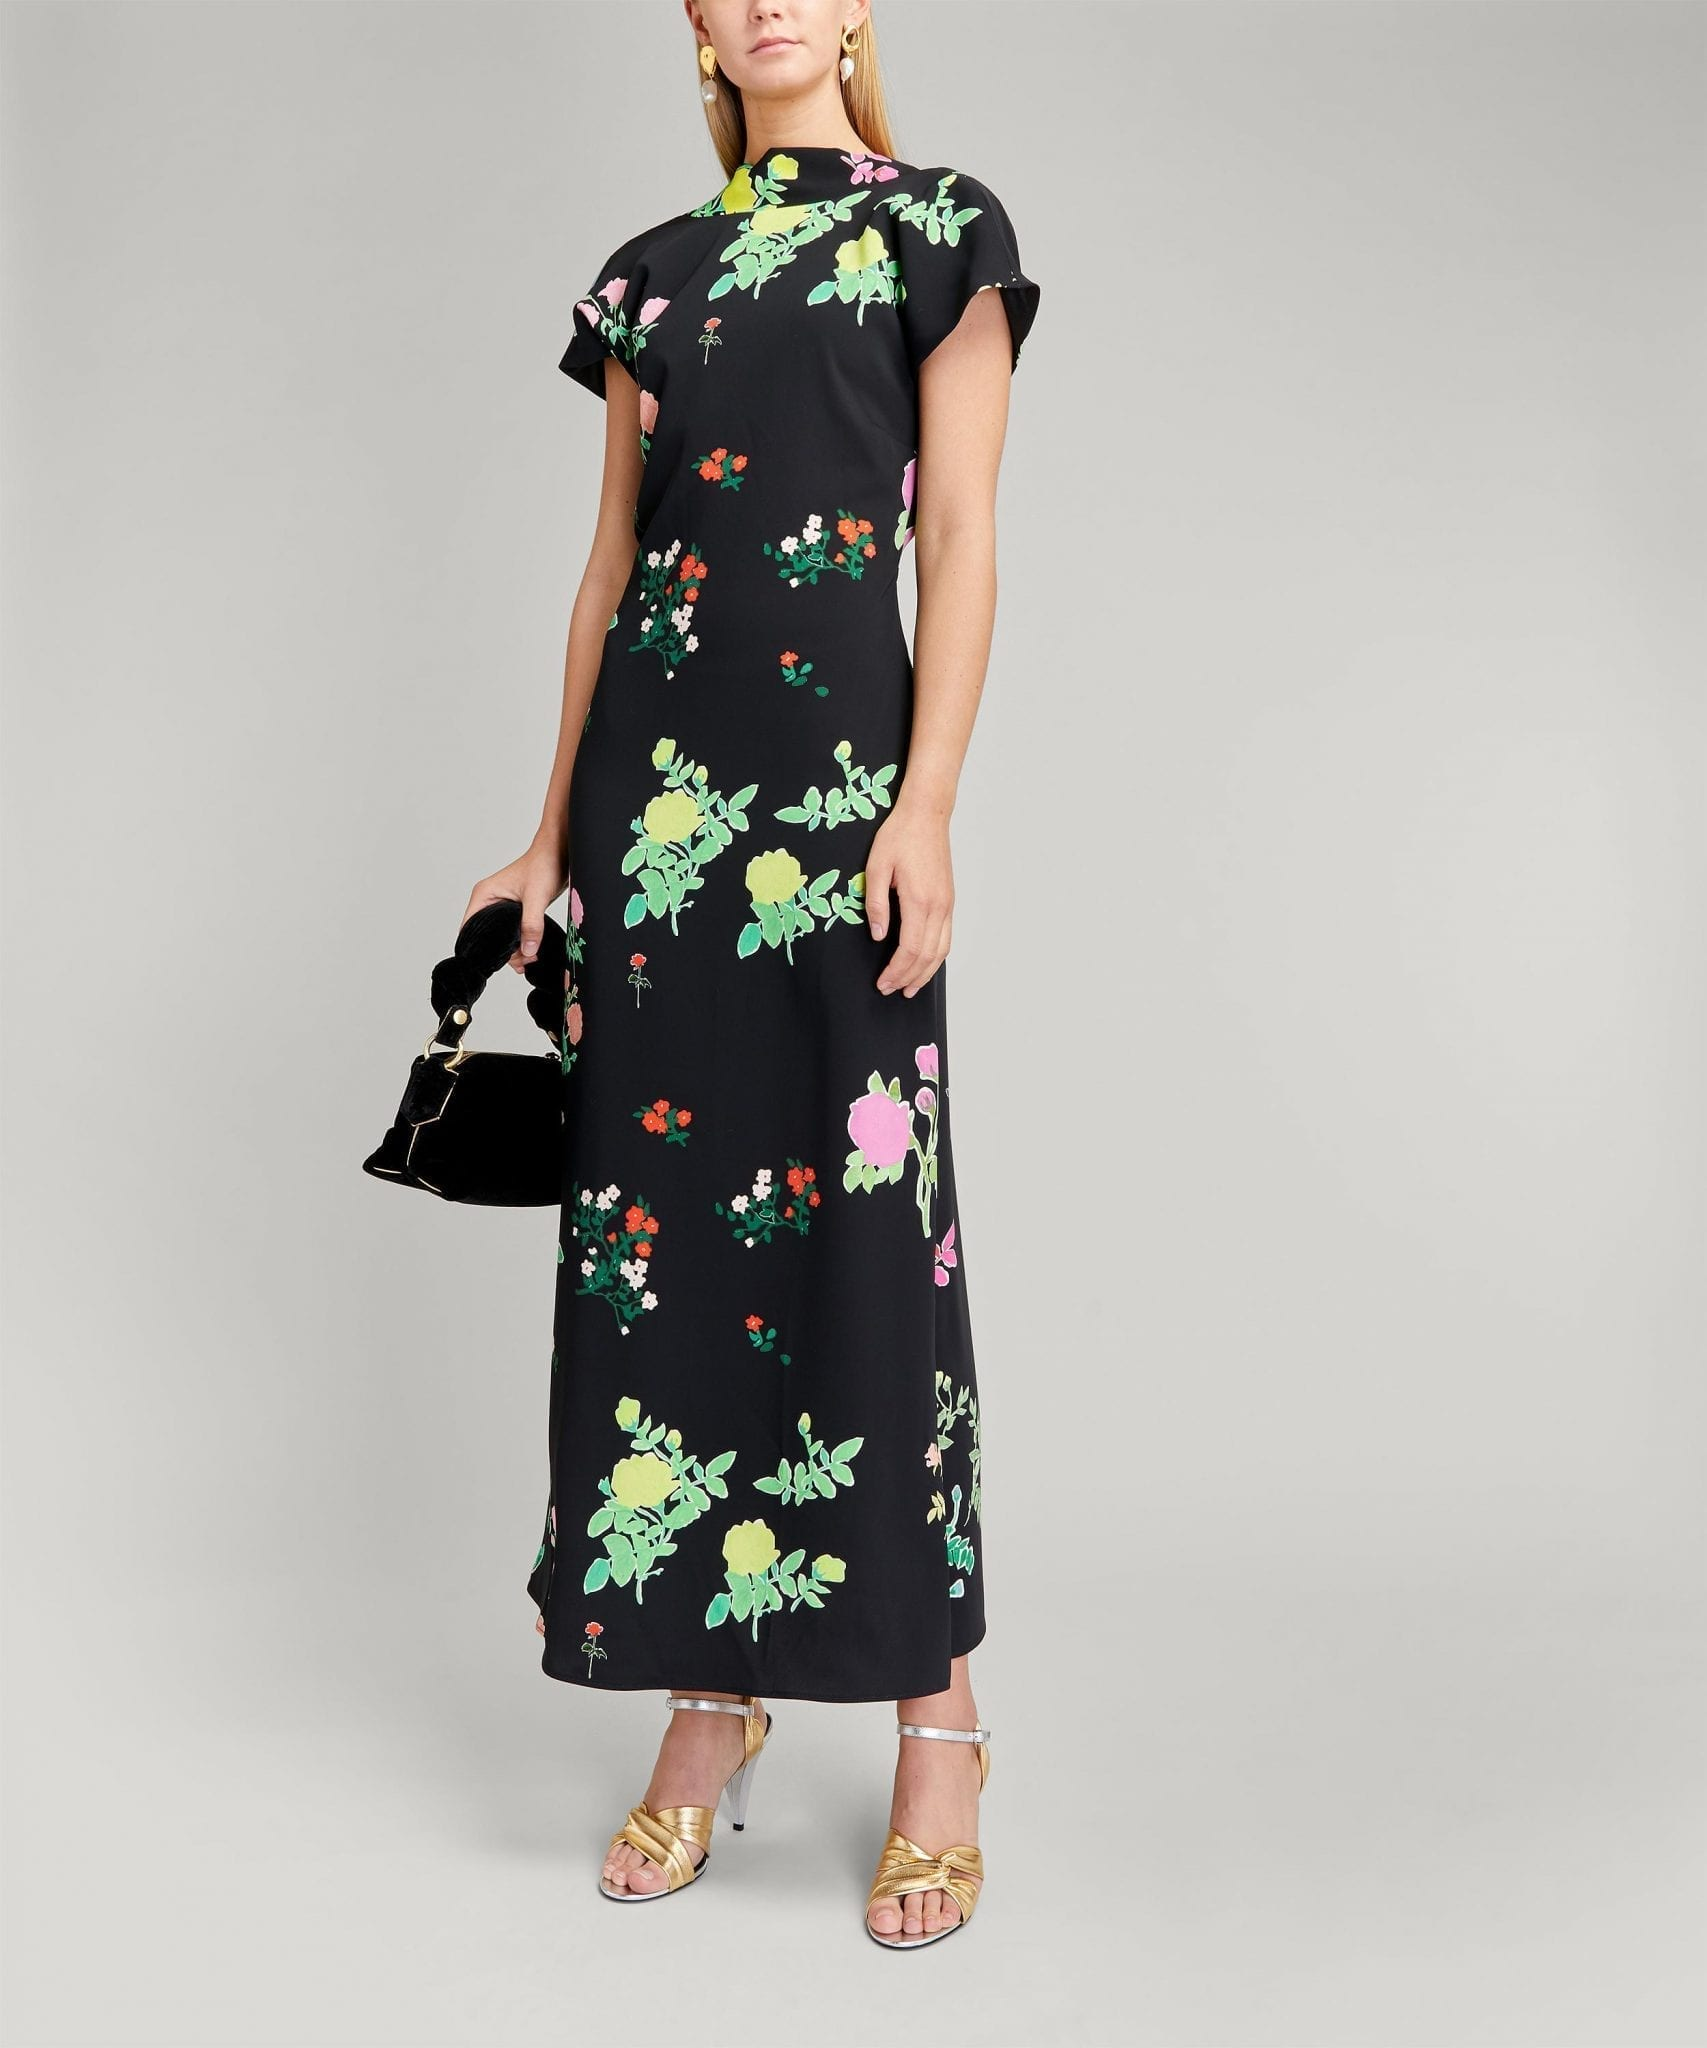 BERNADETTE Valentine High-Neck Cap-Sleeve Dress